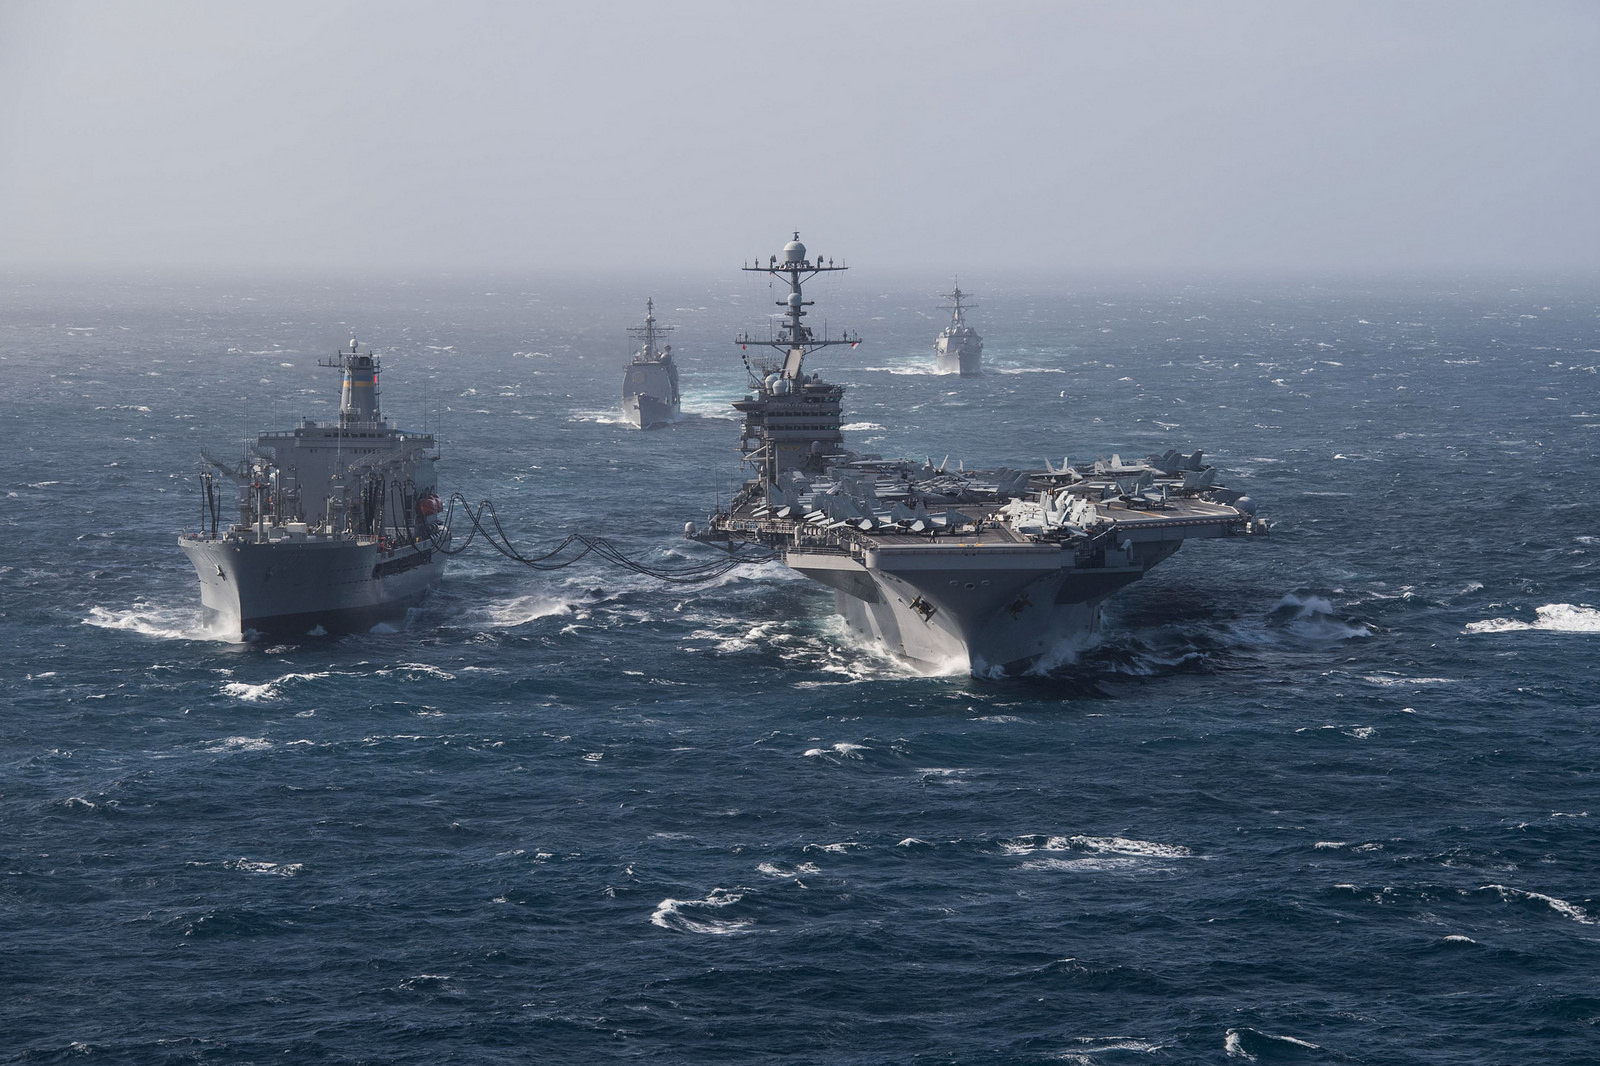 With less than half of the Navy we had 30 years ago, but arguably three times the responsibility, and growing, we must reassert a decisive naval force and its relationship to American prosperity. (U.S. Navy)